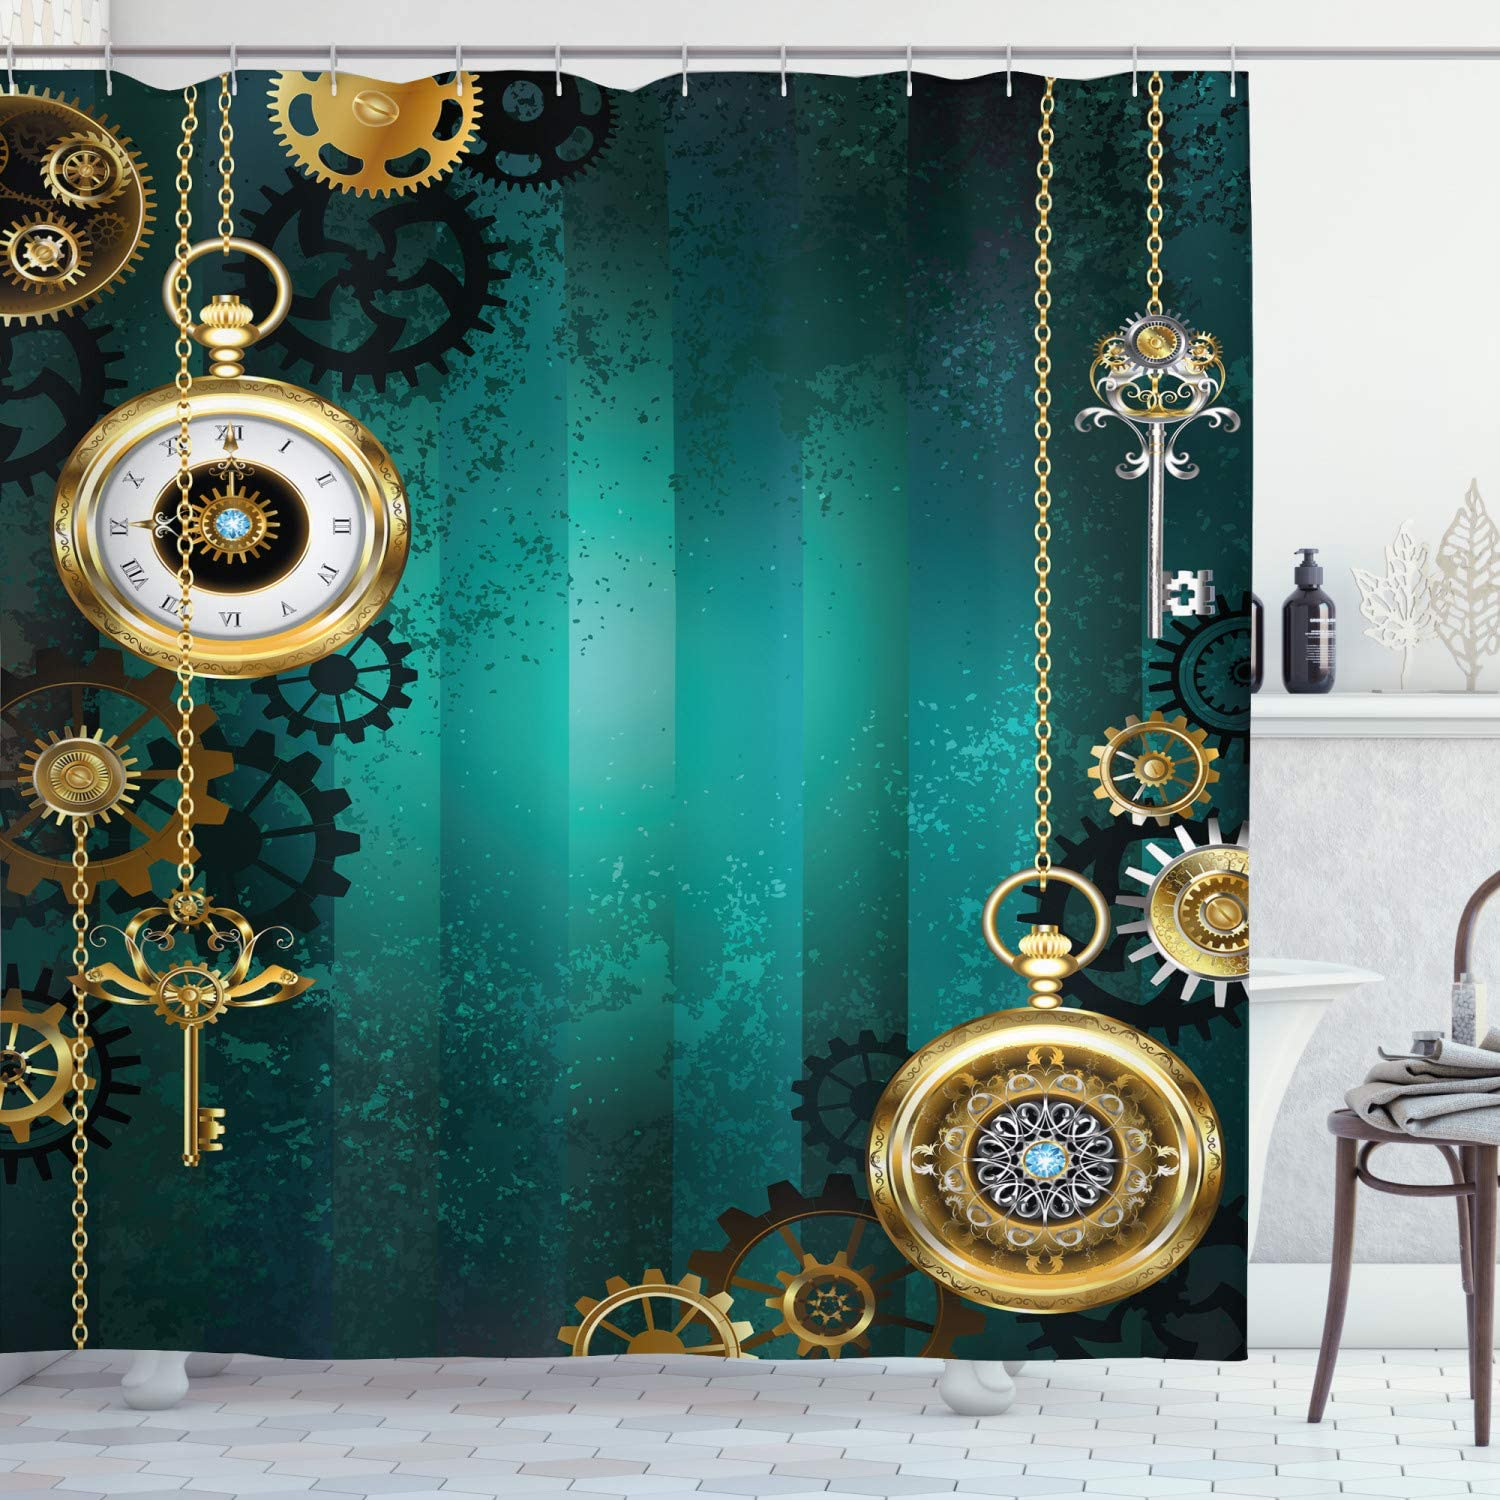 Ambesonne Industrial Shower Curtain New Shipping Free Watches Keys Items outlet Antique